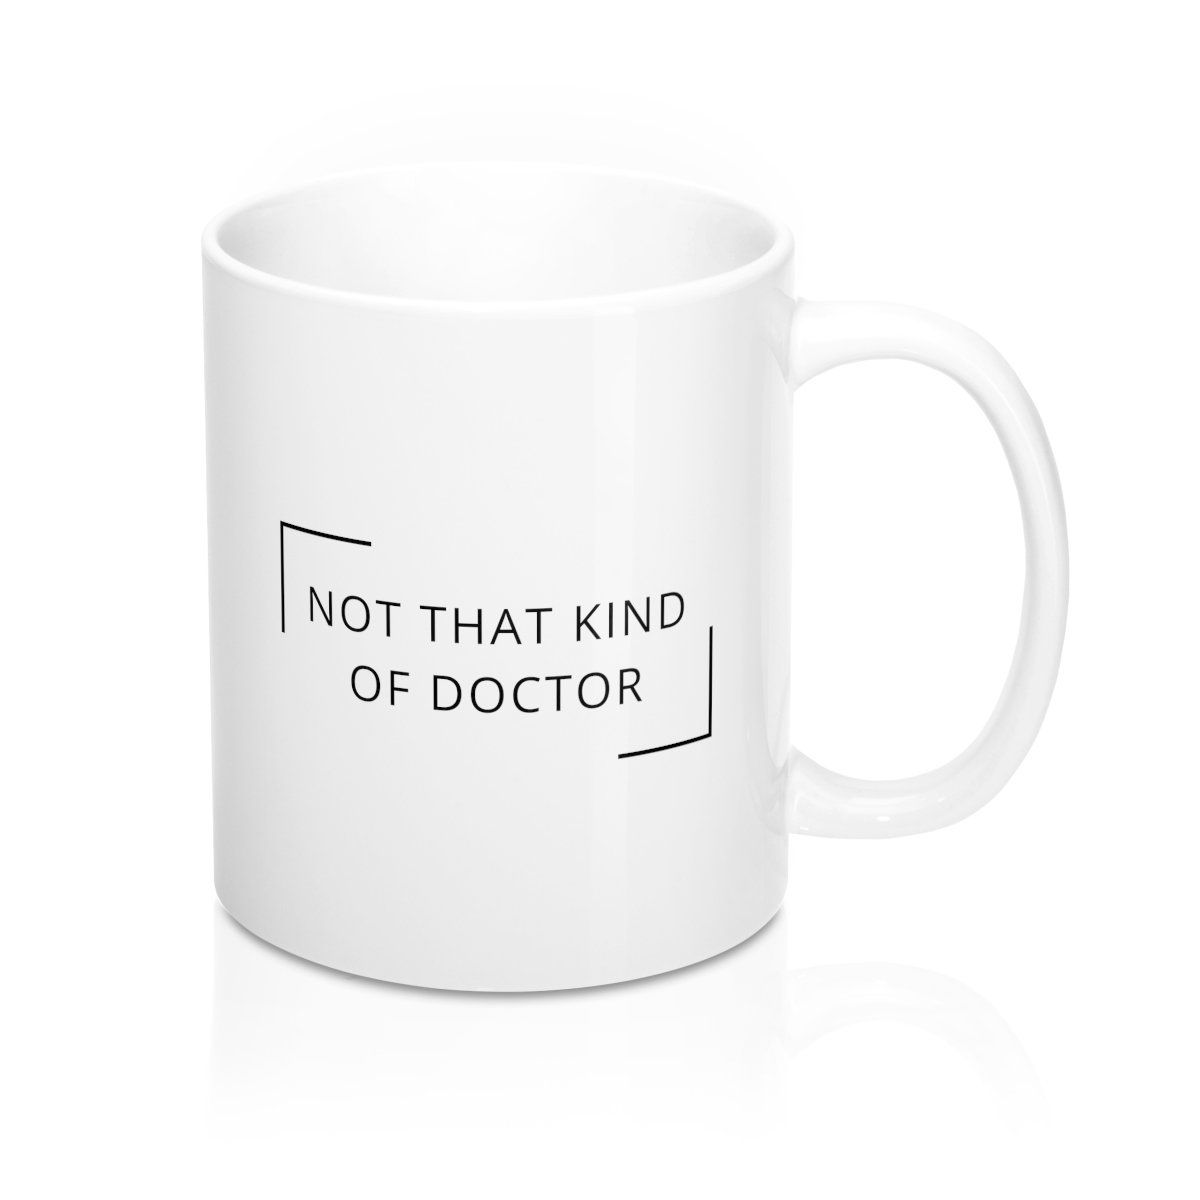 Not That Kind Of Doctor White Mug 11oz Funny Doctor Mug Funny Doctor Gift Phd Mug Phd Gift Doctorate Mug Doctor Doctor Gifts Funny Doctor Gift Phd Gifts